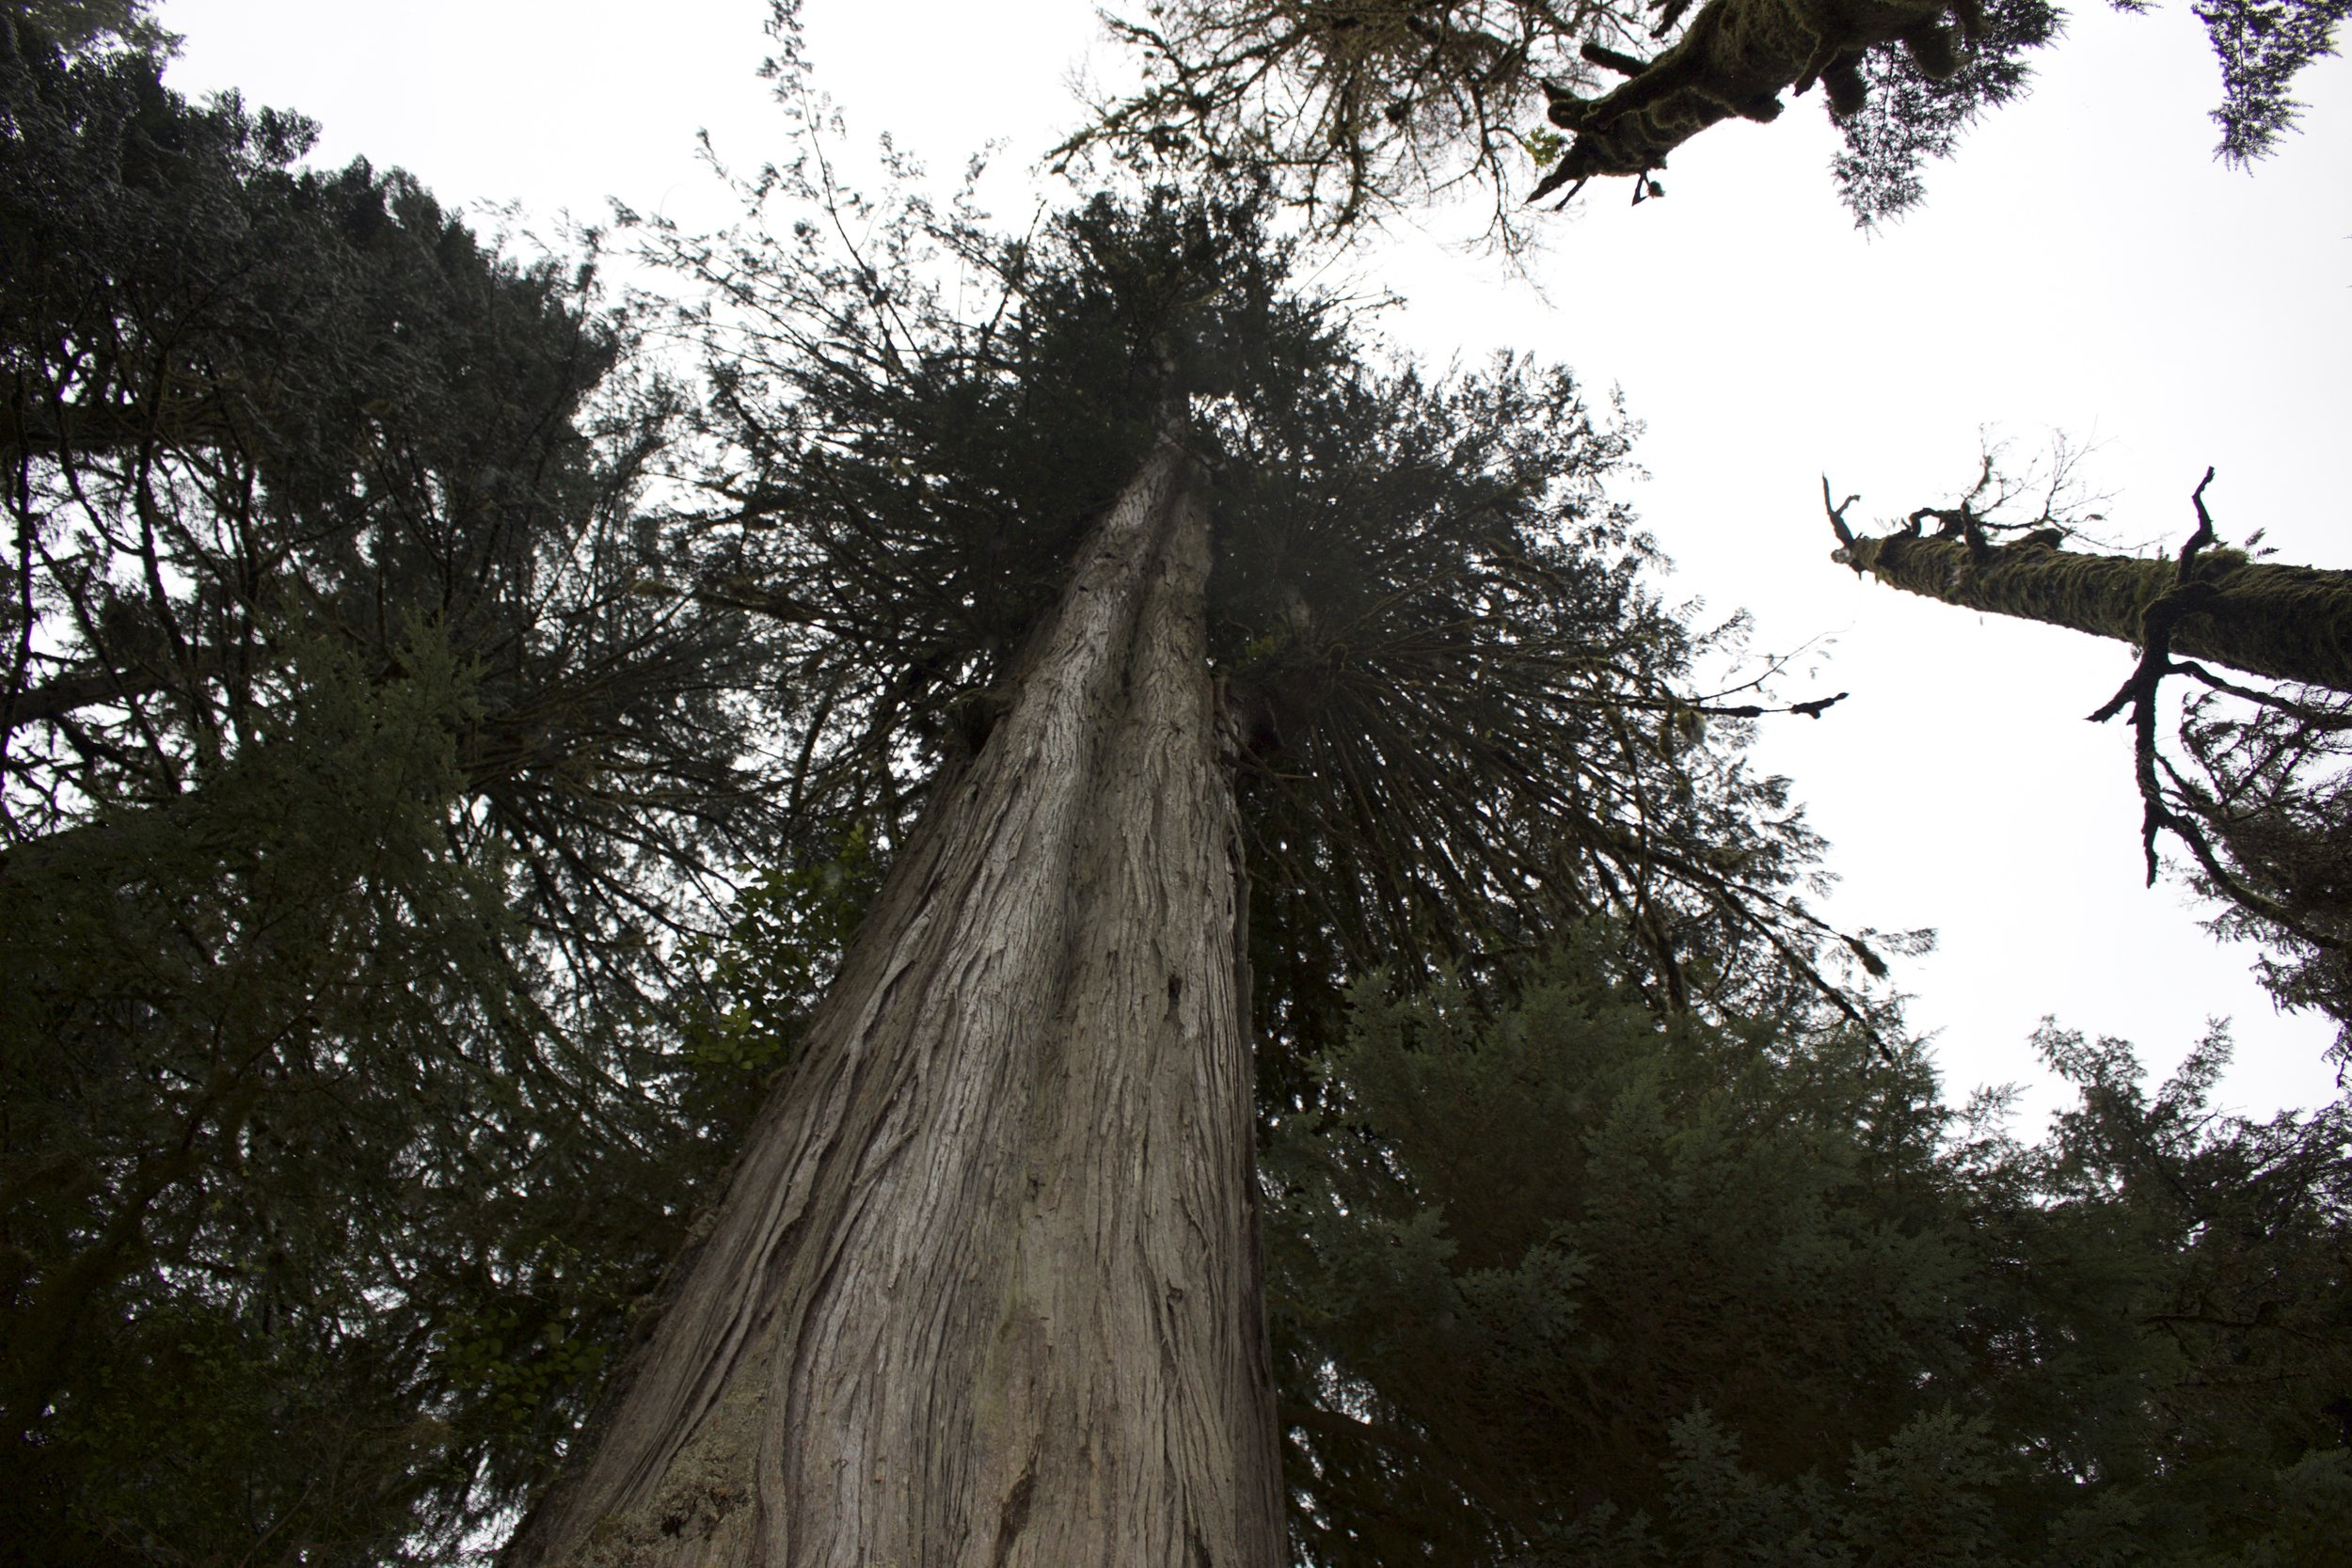 One of many majestic trees in the forest